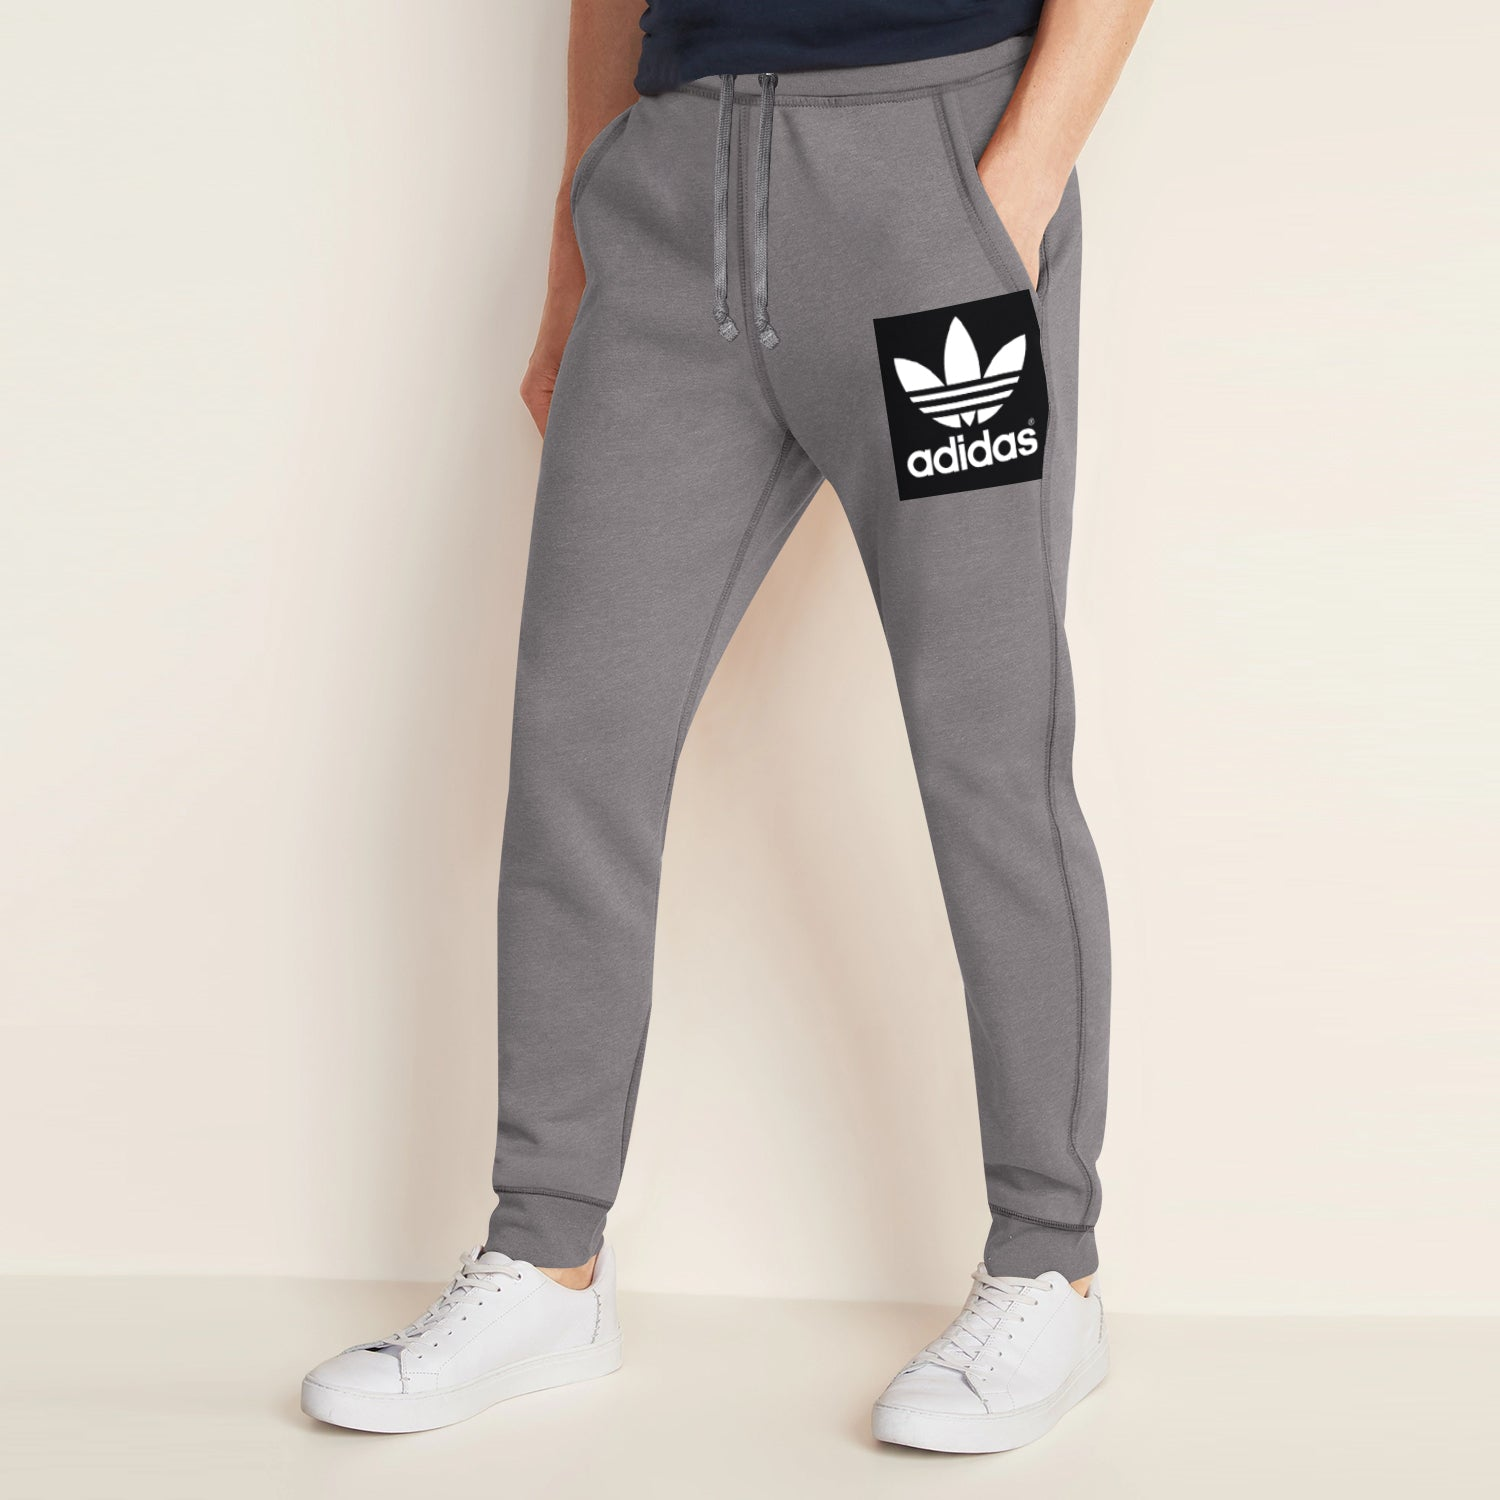 Adidas Fleece Slim Fit Jogger Trouser For Men-Pale Grey-BE10764